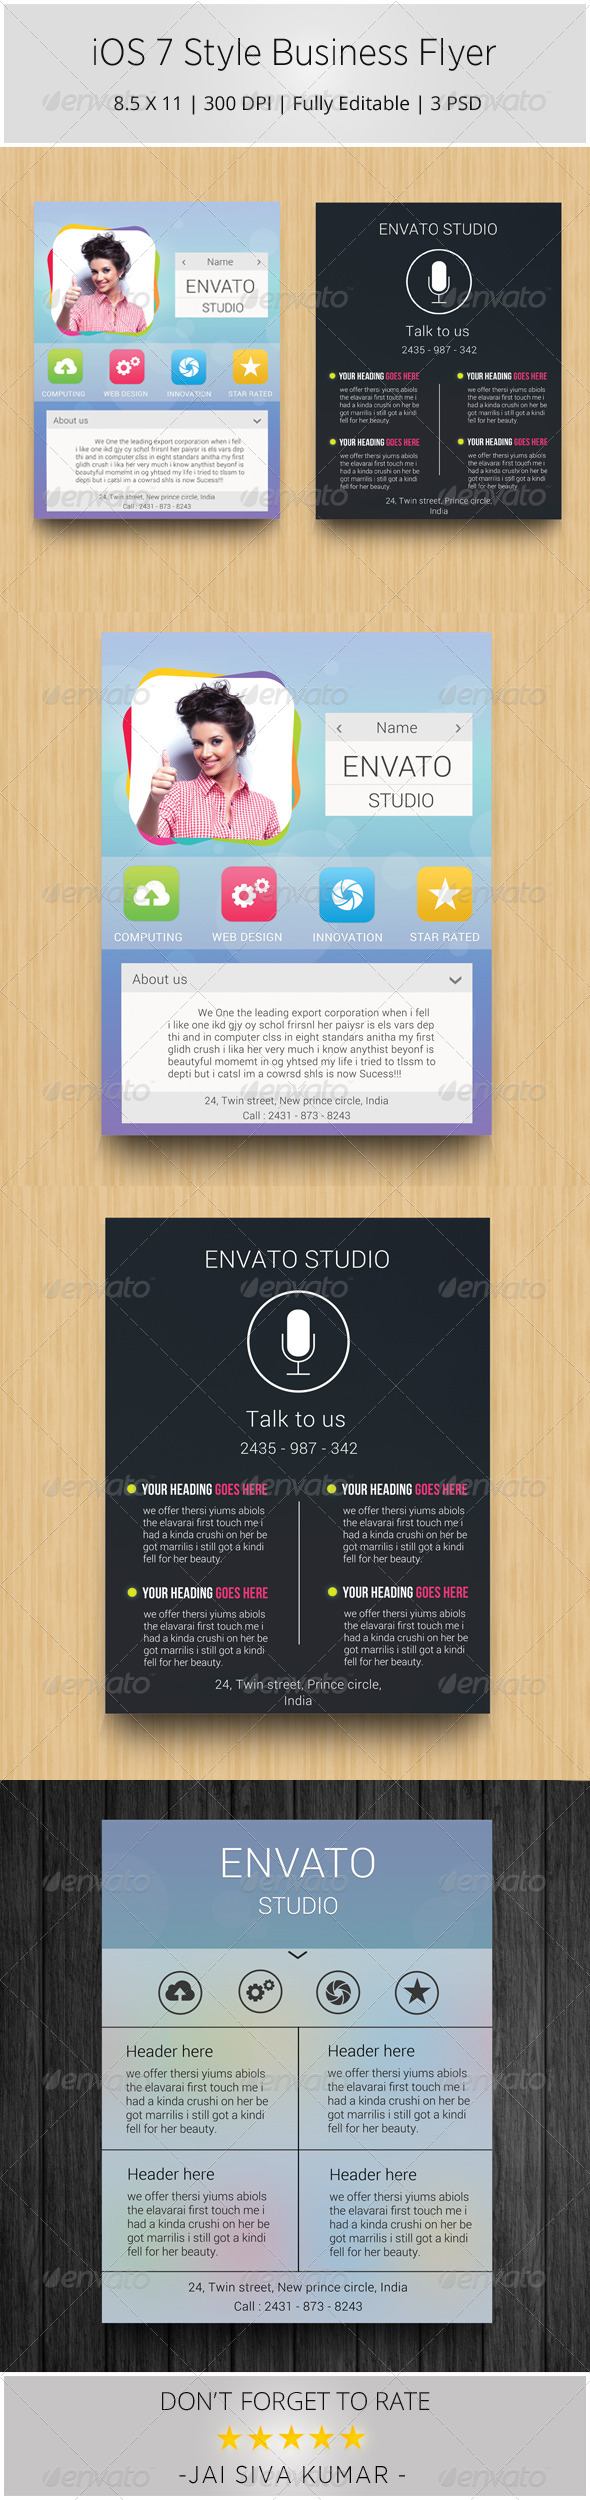 GraphicRiver iOS 7 Style Business Flyer 6756833